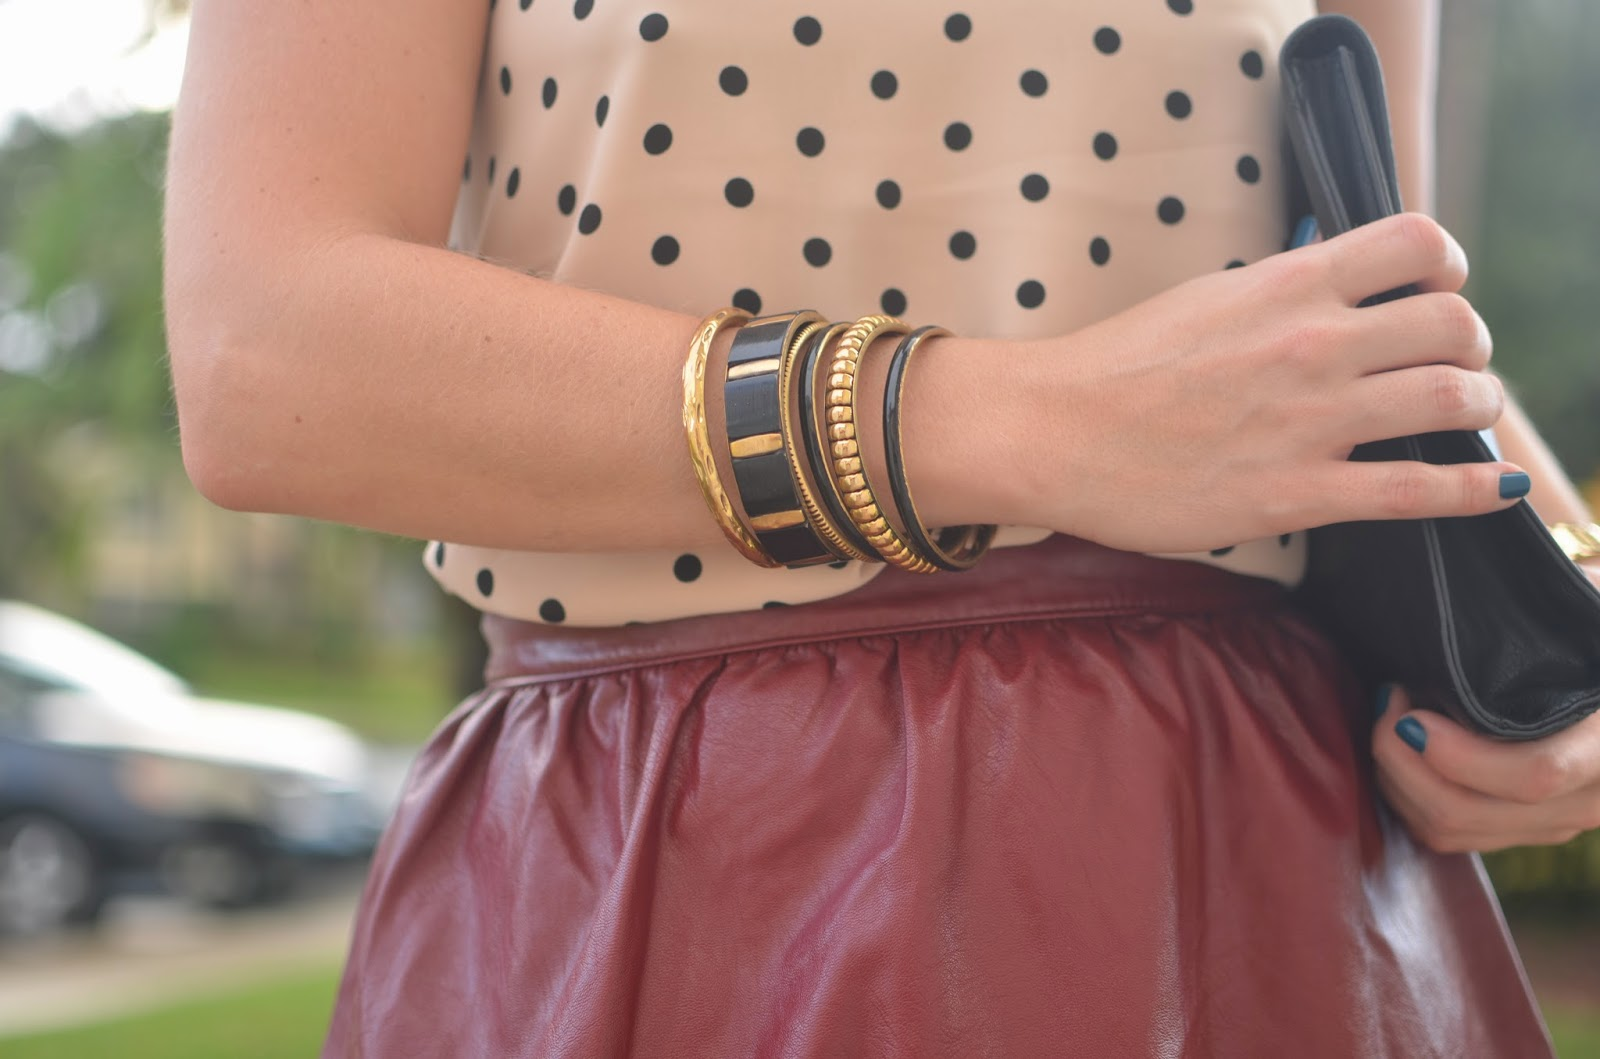 Burgundy leather skirt - polka dot top - black clutch - bangles